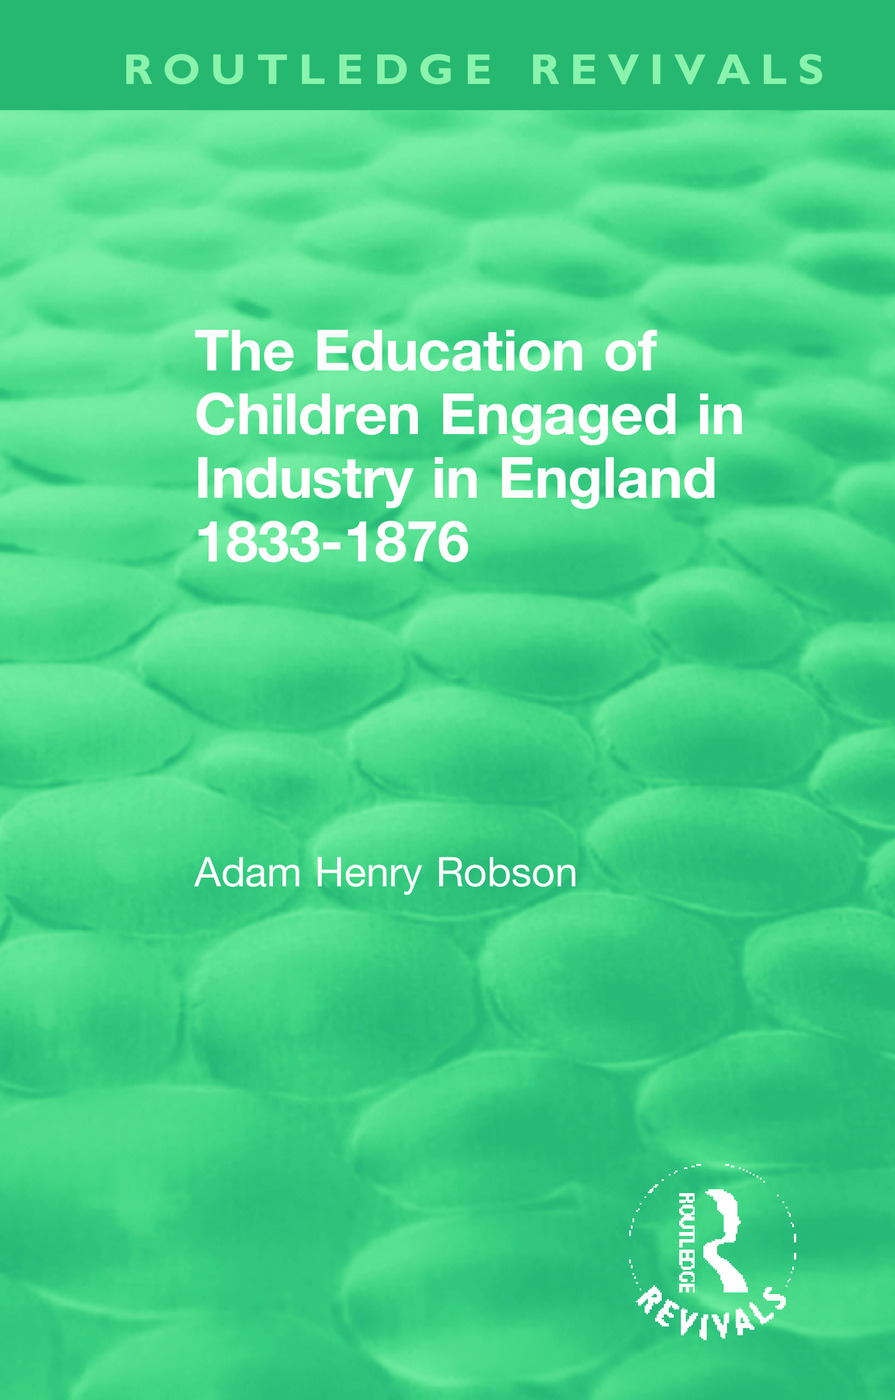 The Education of Children Engaged in Industry in England 1833-1876 book cover